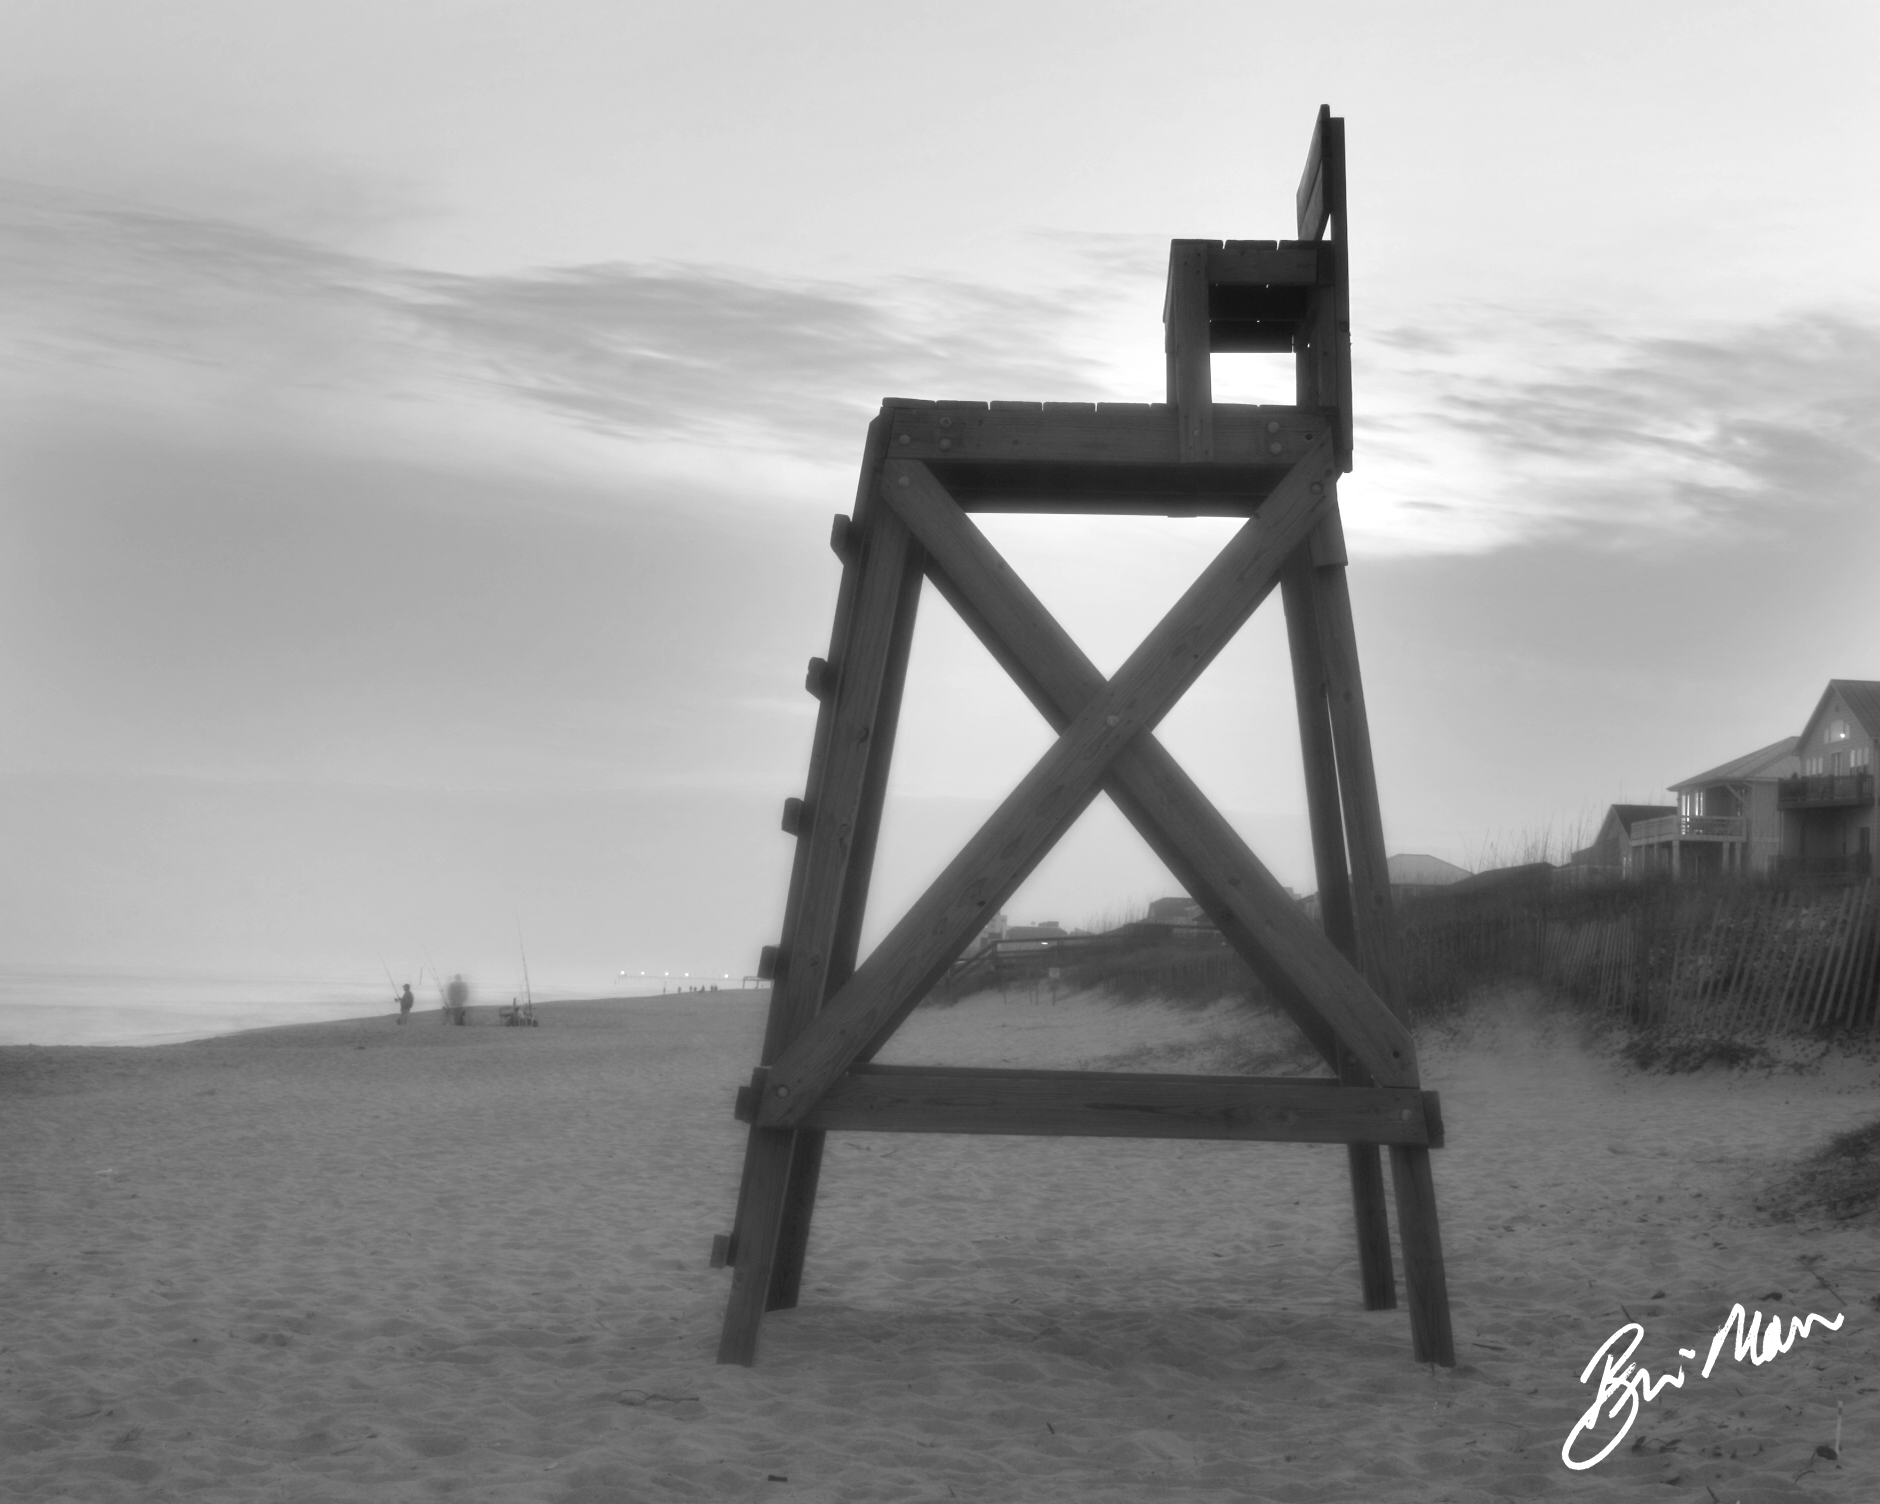 Lifeguard Chair Orton ized in Black and White